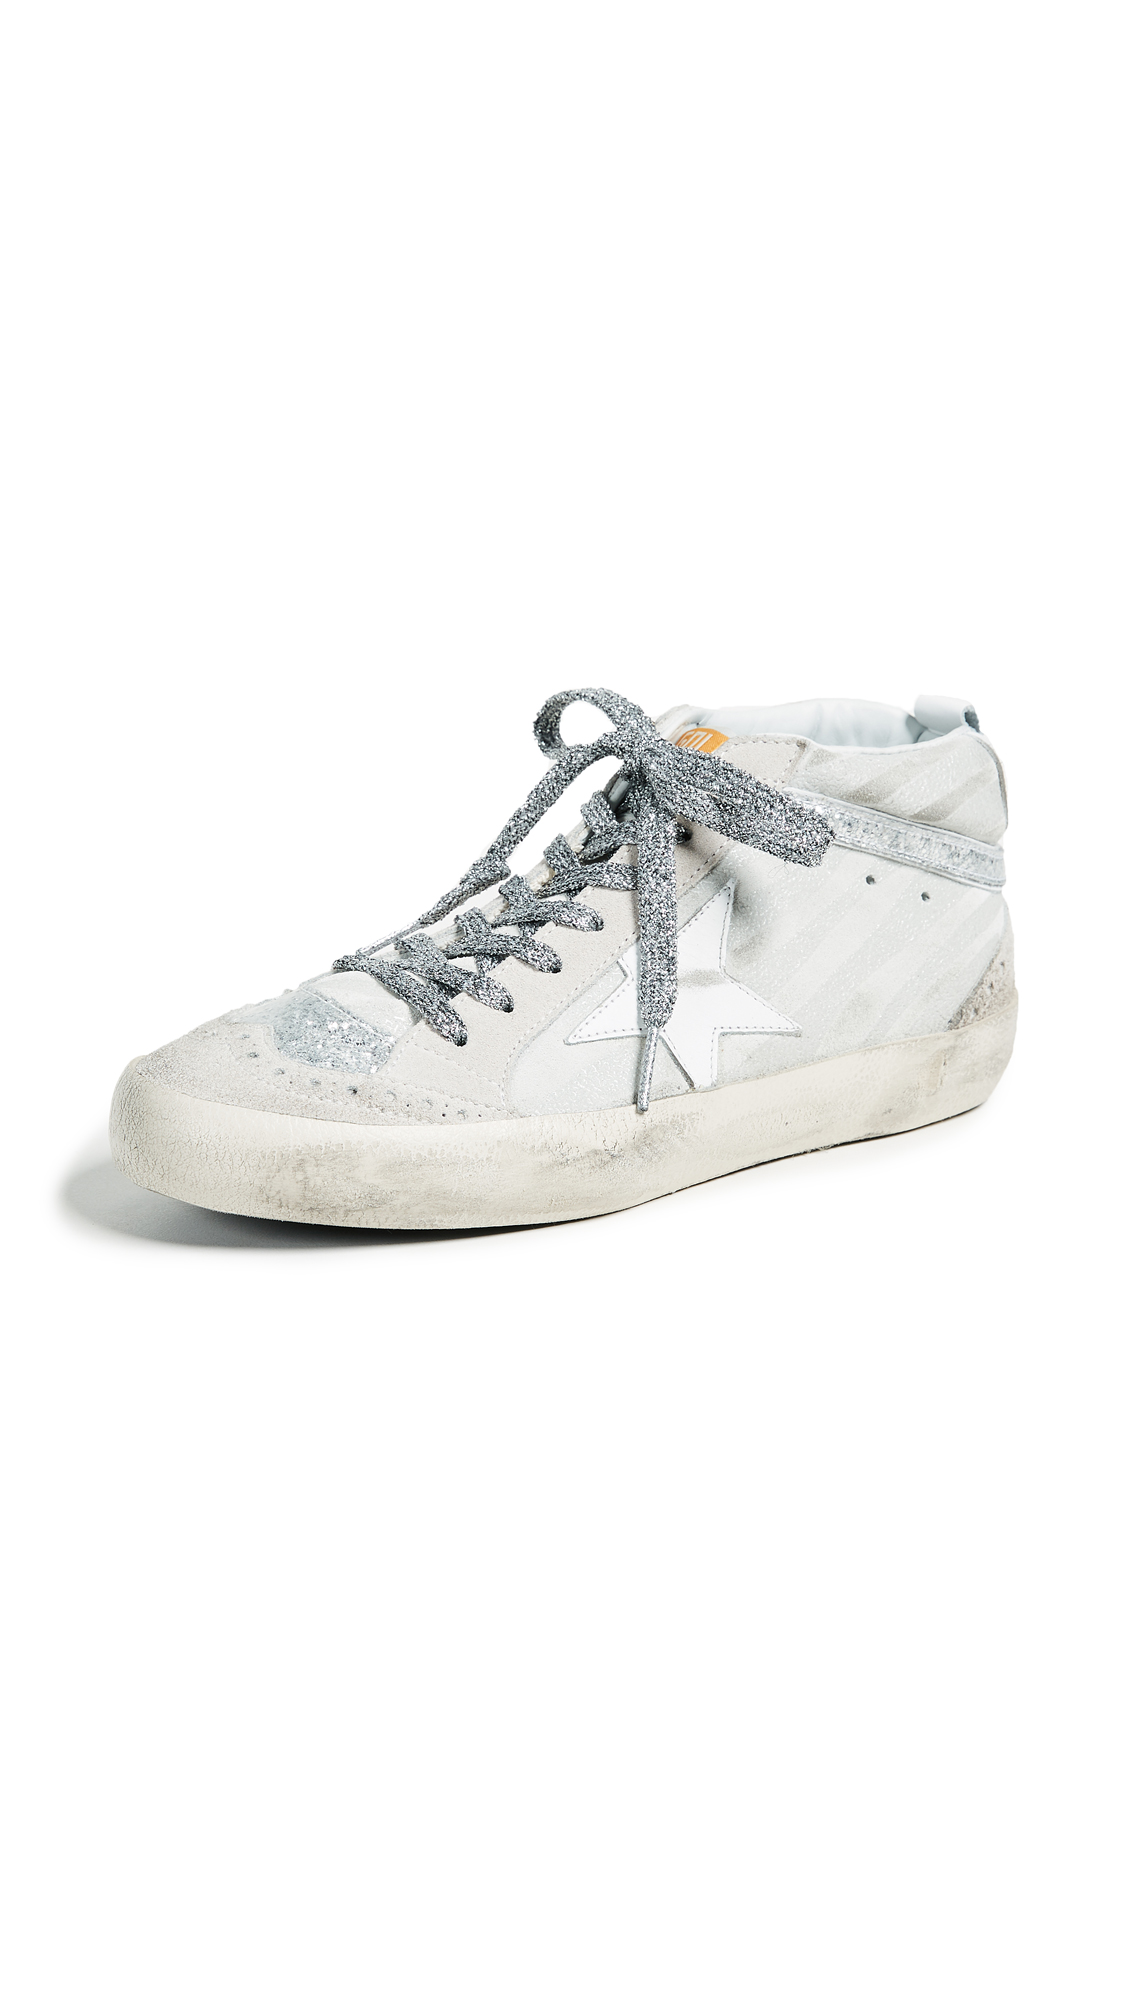 Golden Goose Mid Star Sneakers - White Zebra/Silver